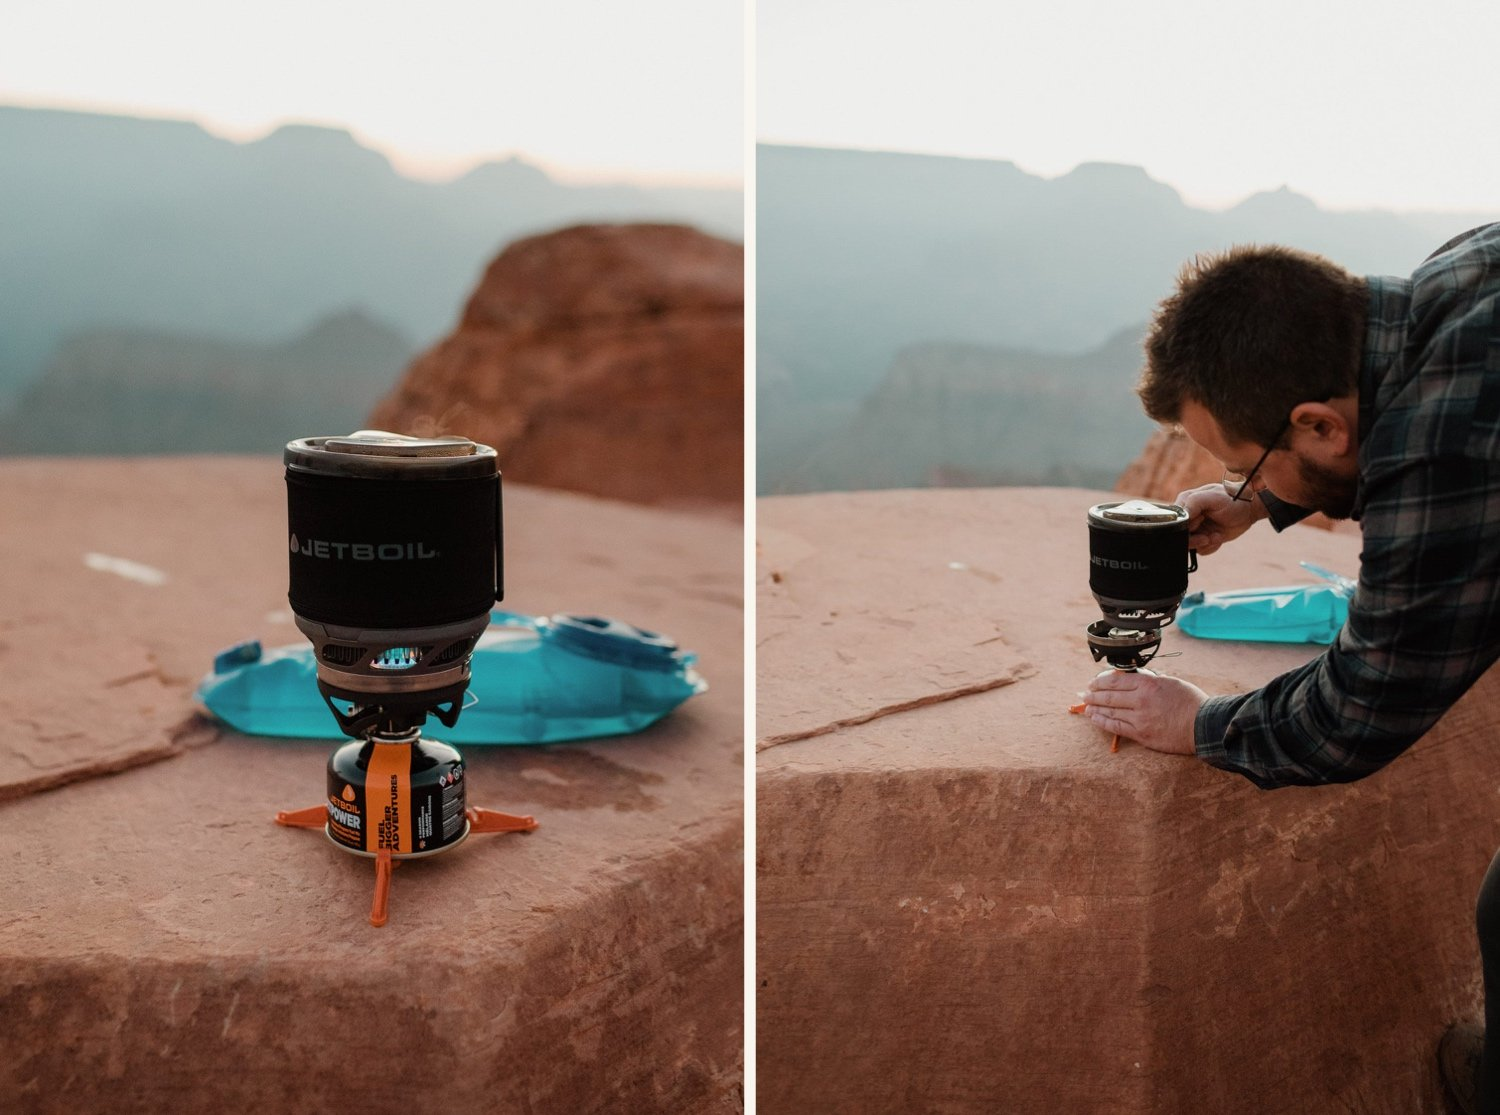 making breakfast with jetboil for sunrise on a day hike